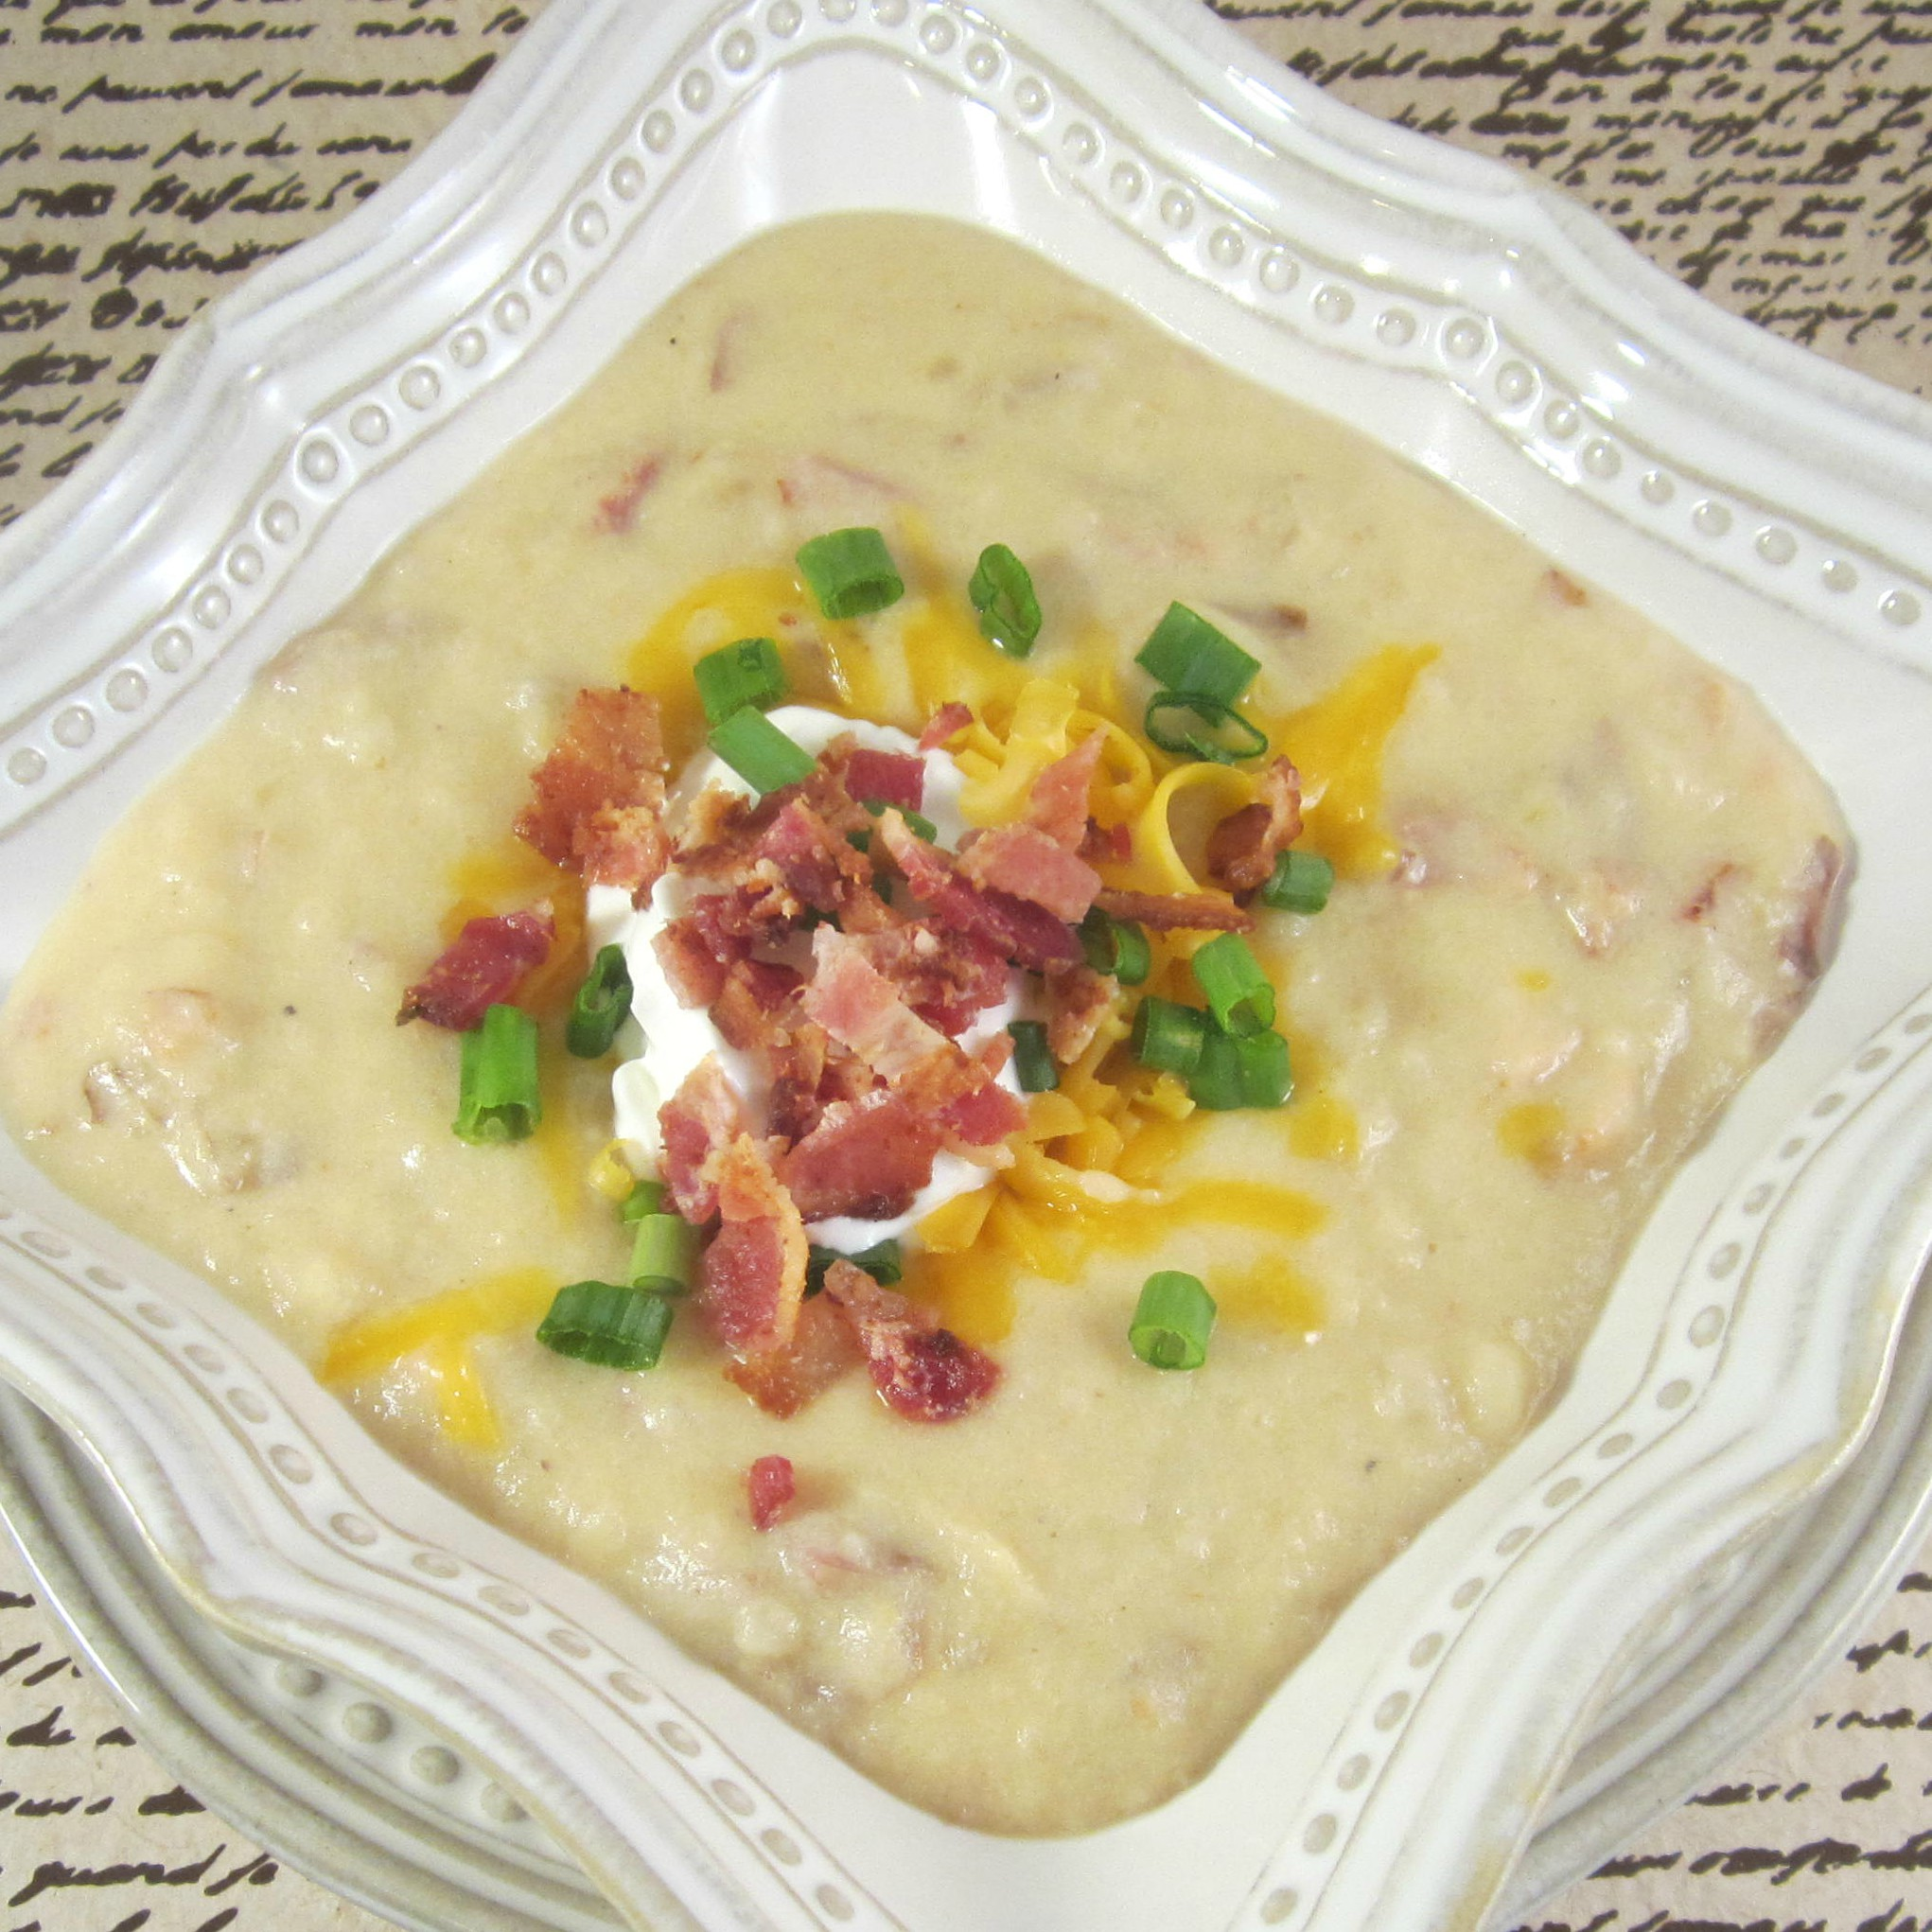 Brett's Slow Cooker Loaded Baked Potato Soup